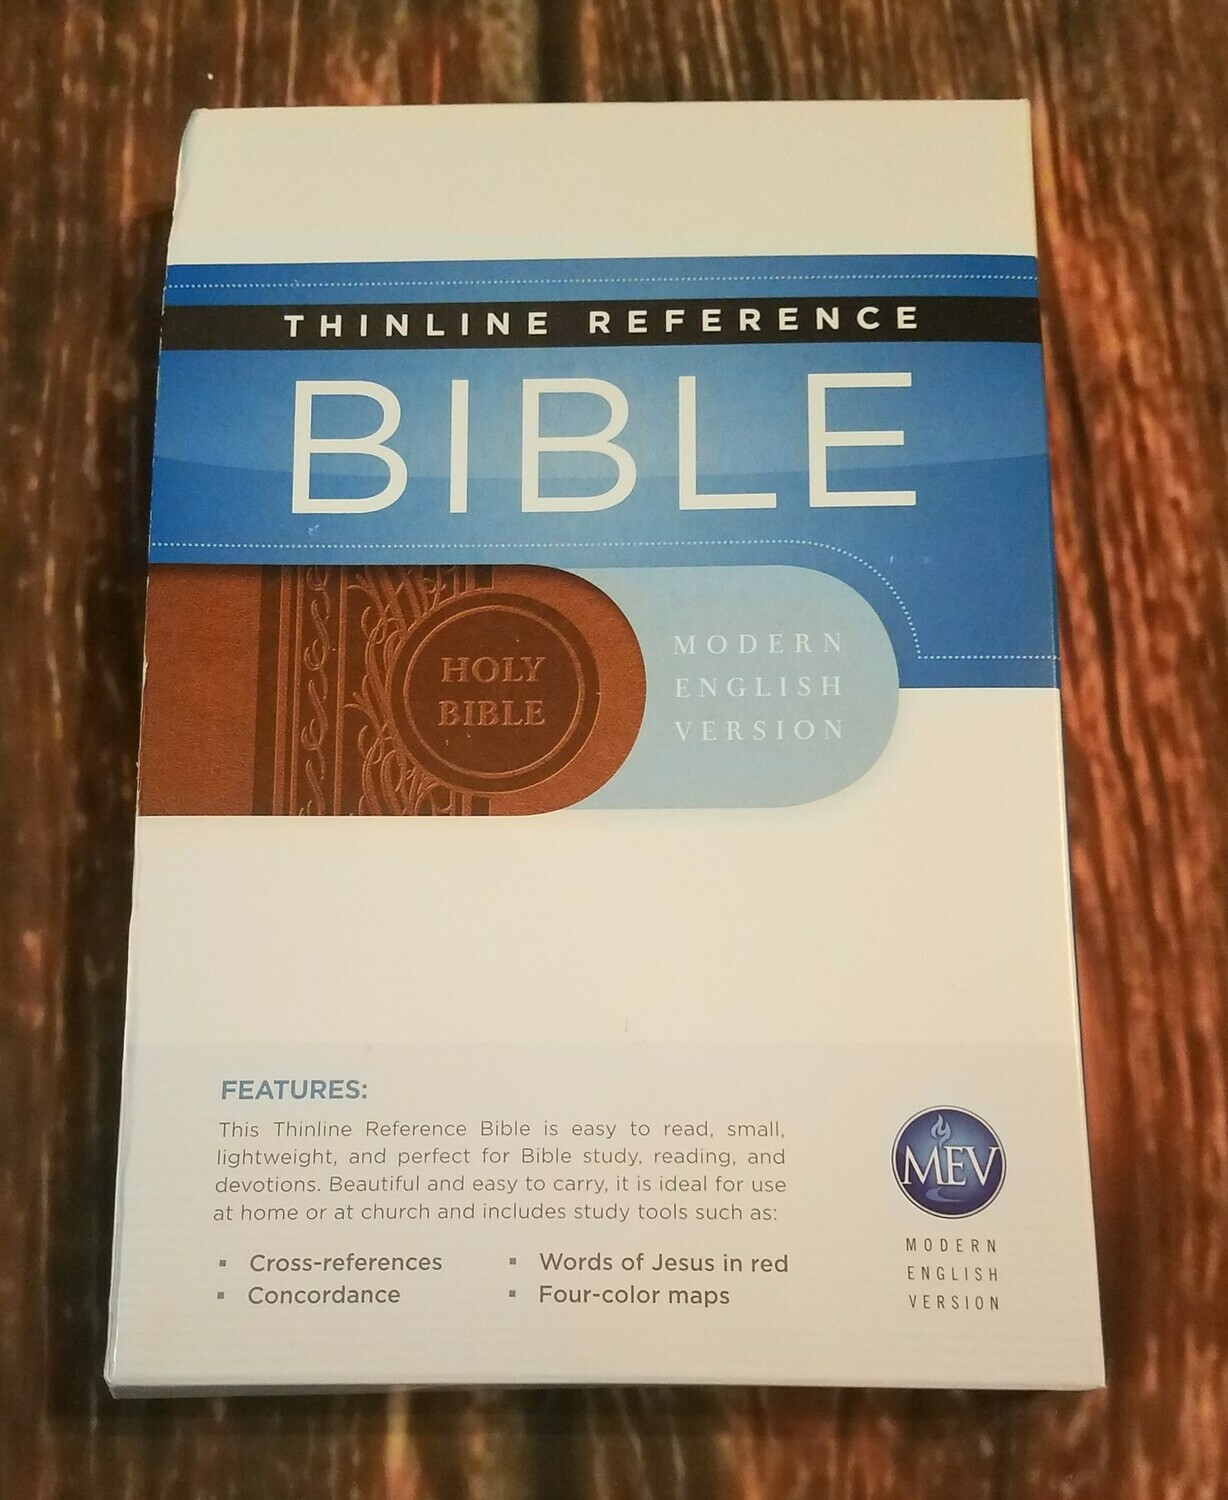 MEV Thinline Reference Bible - Imitation Leather - Brown